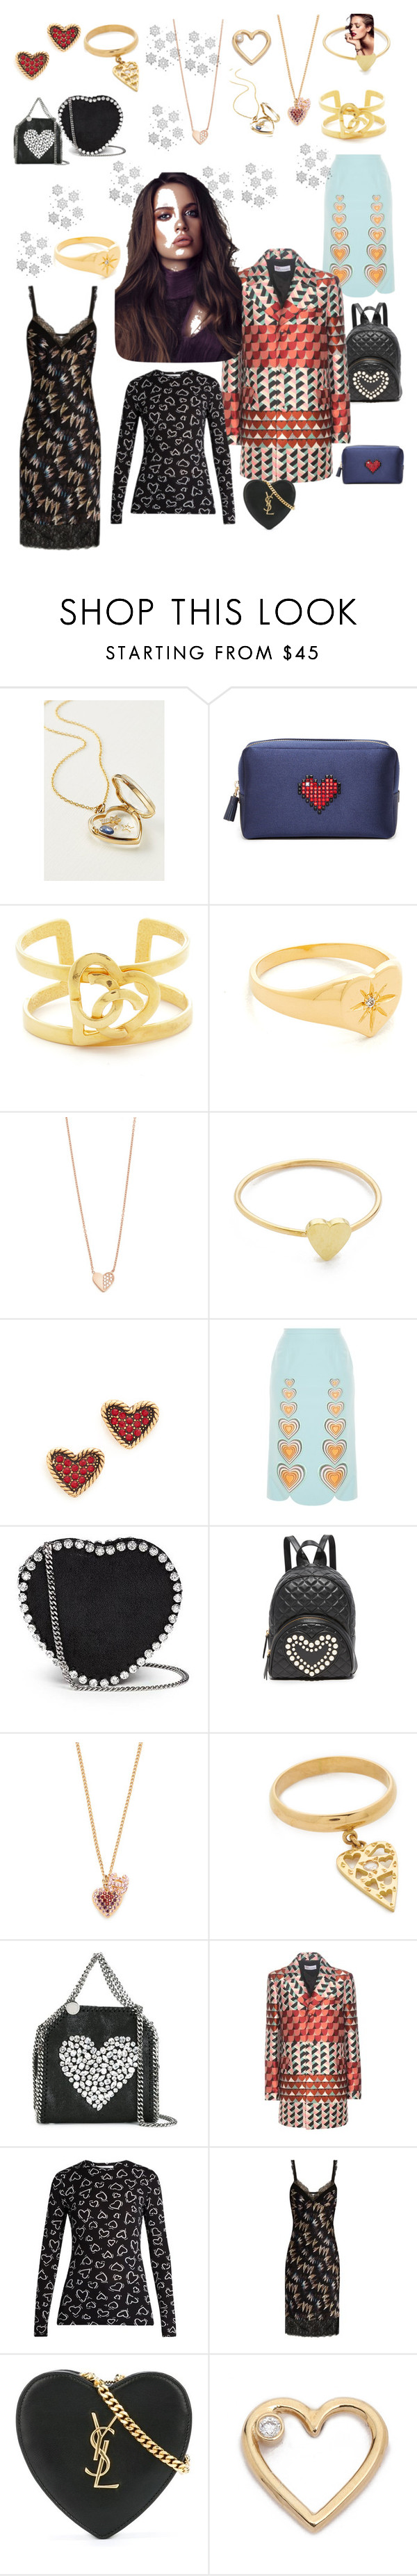 """""""Heart in Everything!"""" by lalu-papa ❤ liked on Polyvore featuring Loquet, Anya Hindmarch, Jacquie Aiche, Ariel Gordon, Jennifer Meyer Jewelry, Marc Jacobs, Christopher Kane, STELLA McCARTNEY, Boutique Moschino and Natasha Zinko"""